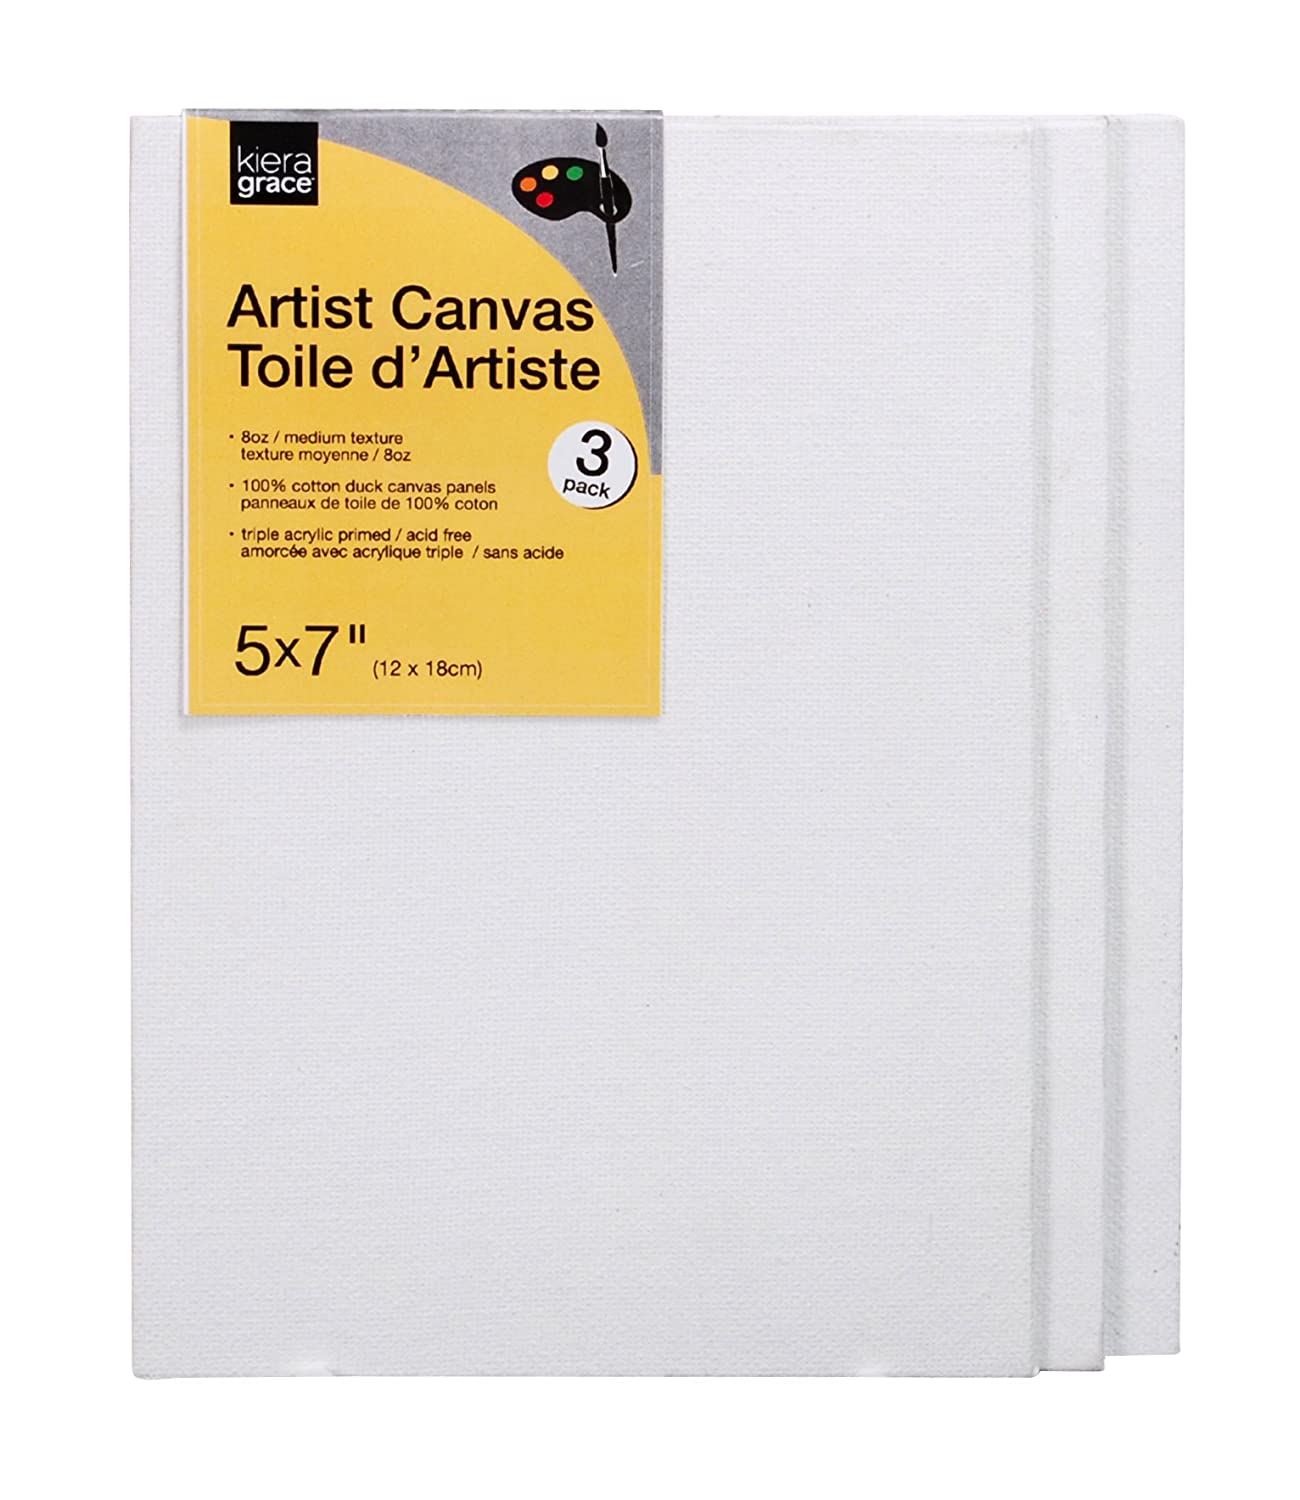 Kiera Grace Artists Canvas Panel, 5 by 7 Inch, 3 Pack, 8 Ounce Cotton Duck CR90200-9